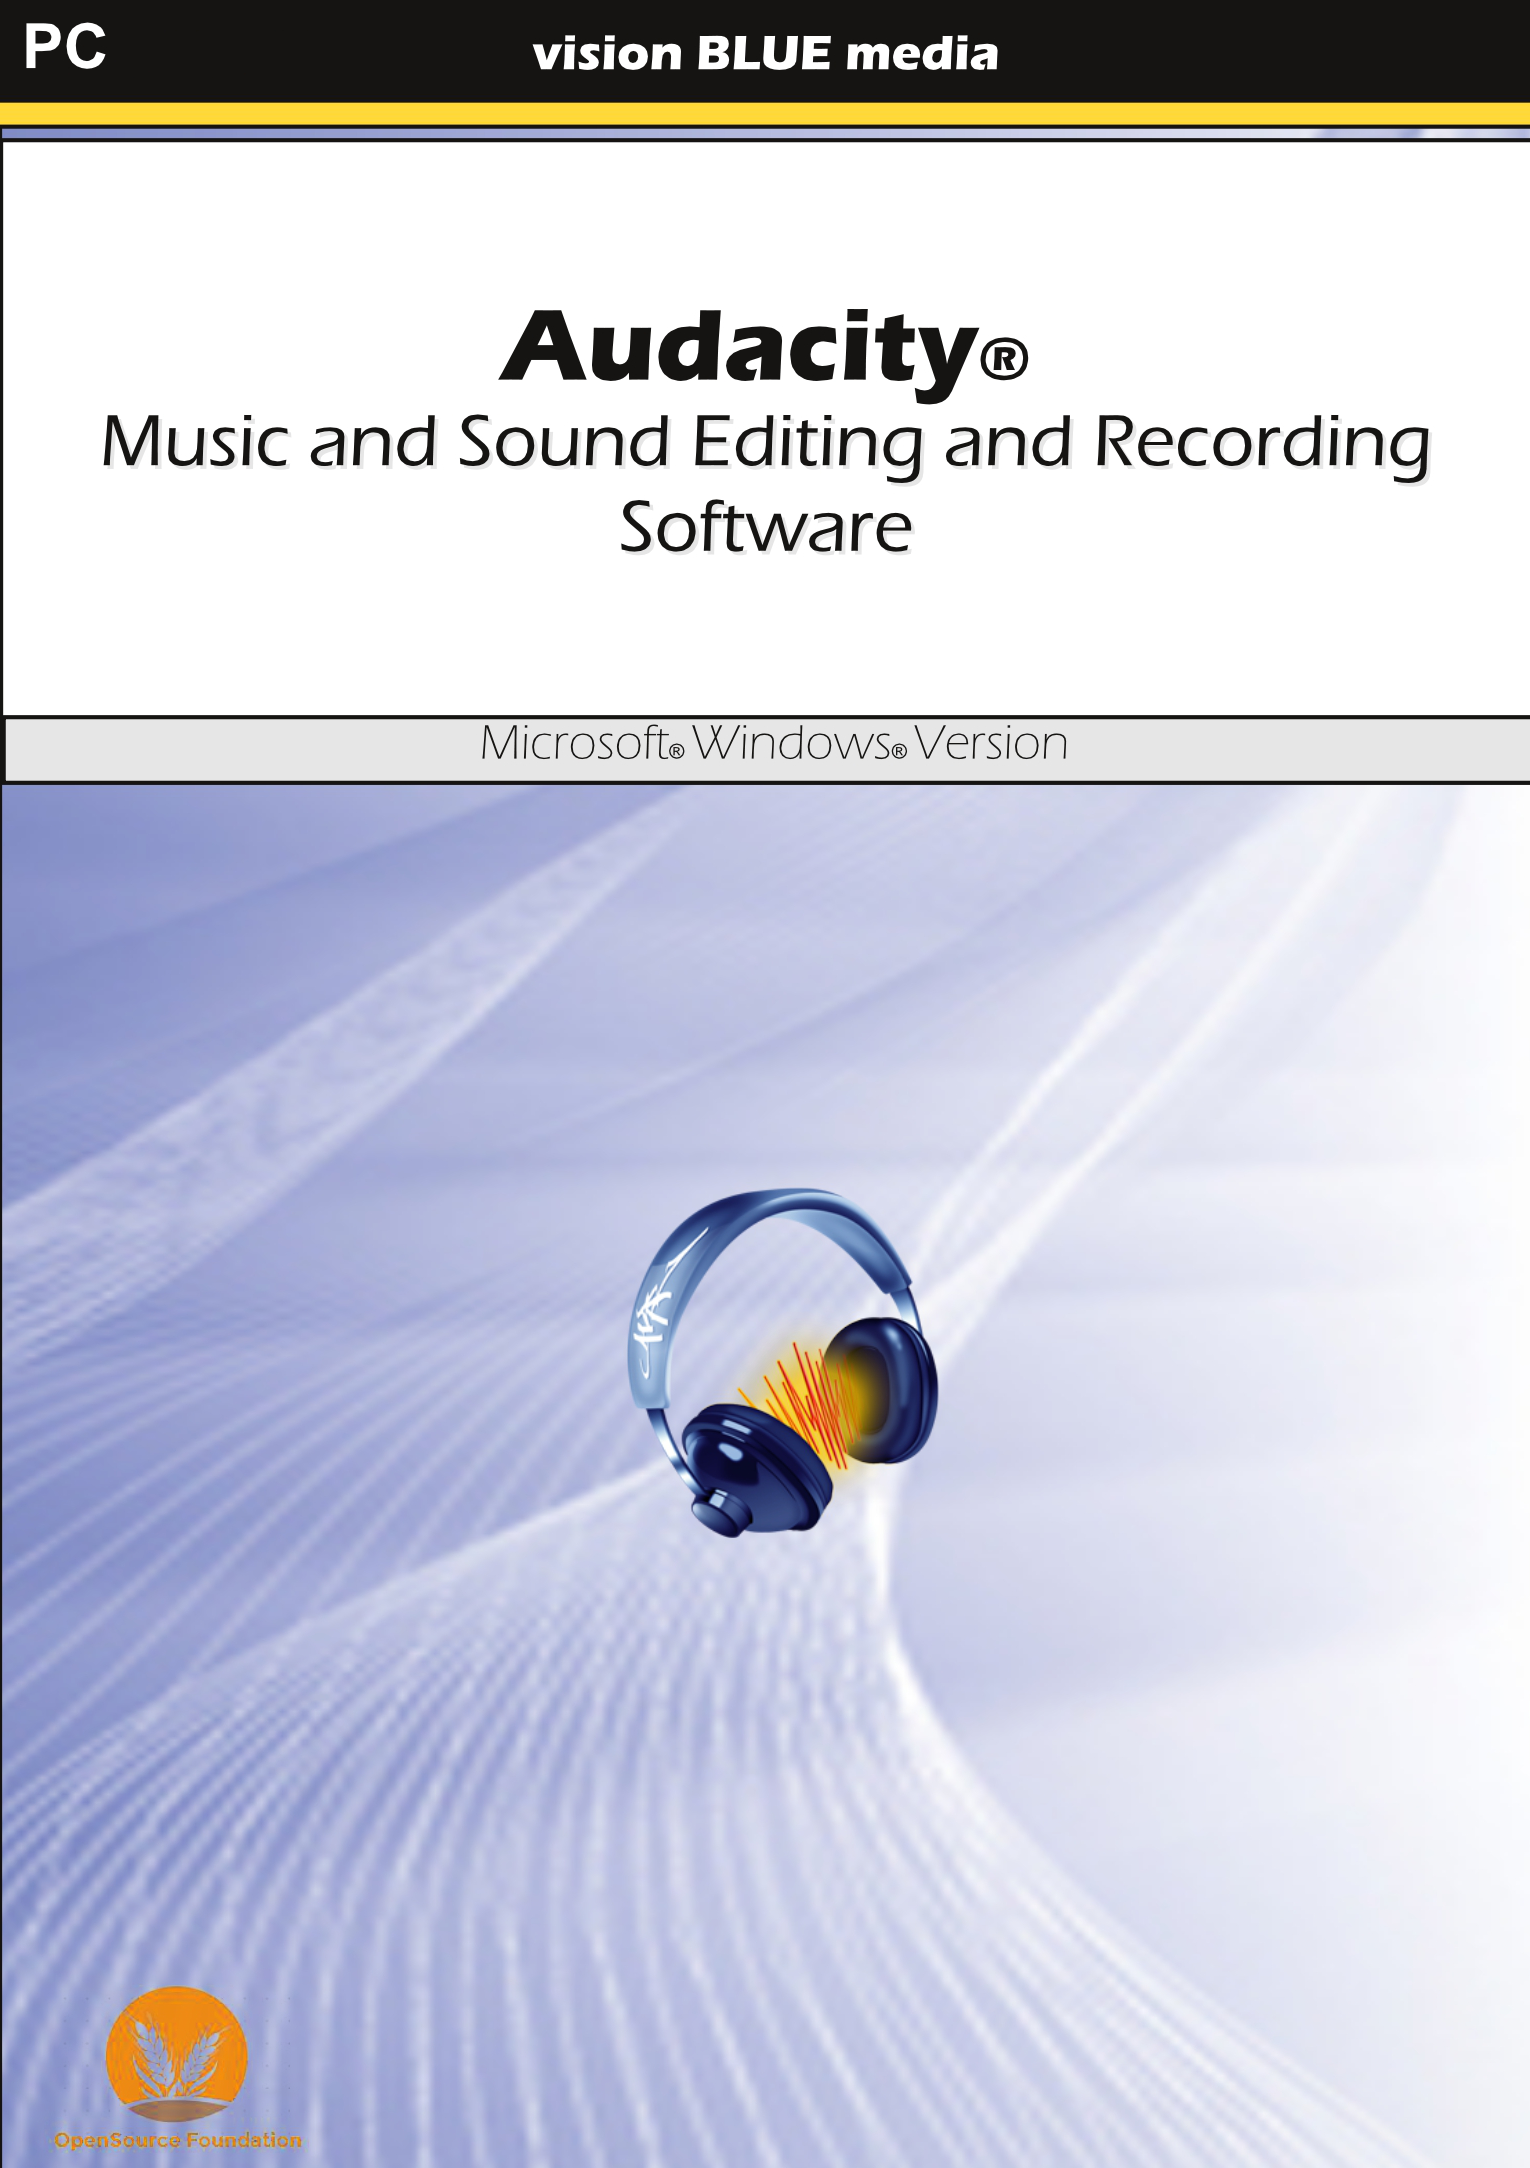 Audacity - Sound and Music Editing and Recording